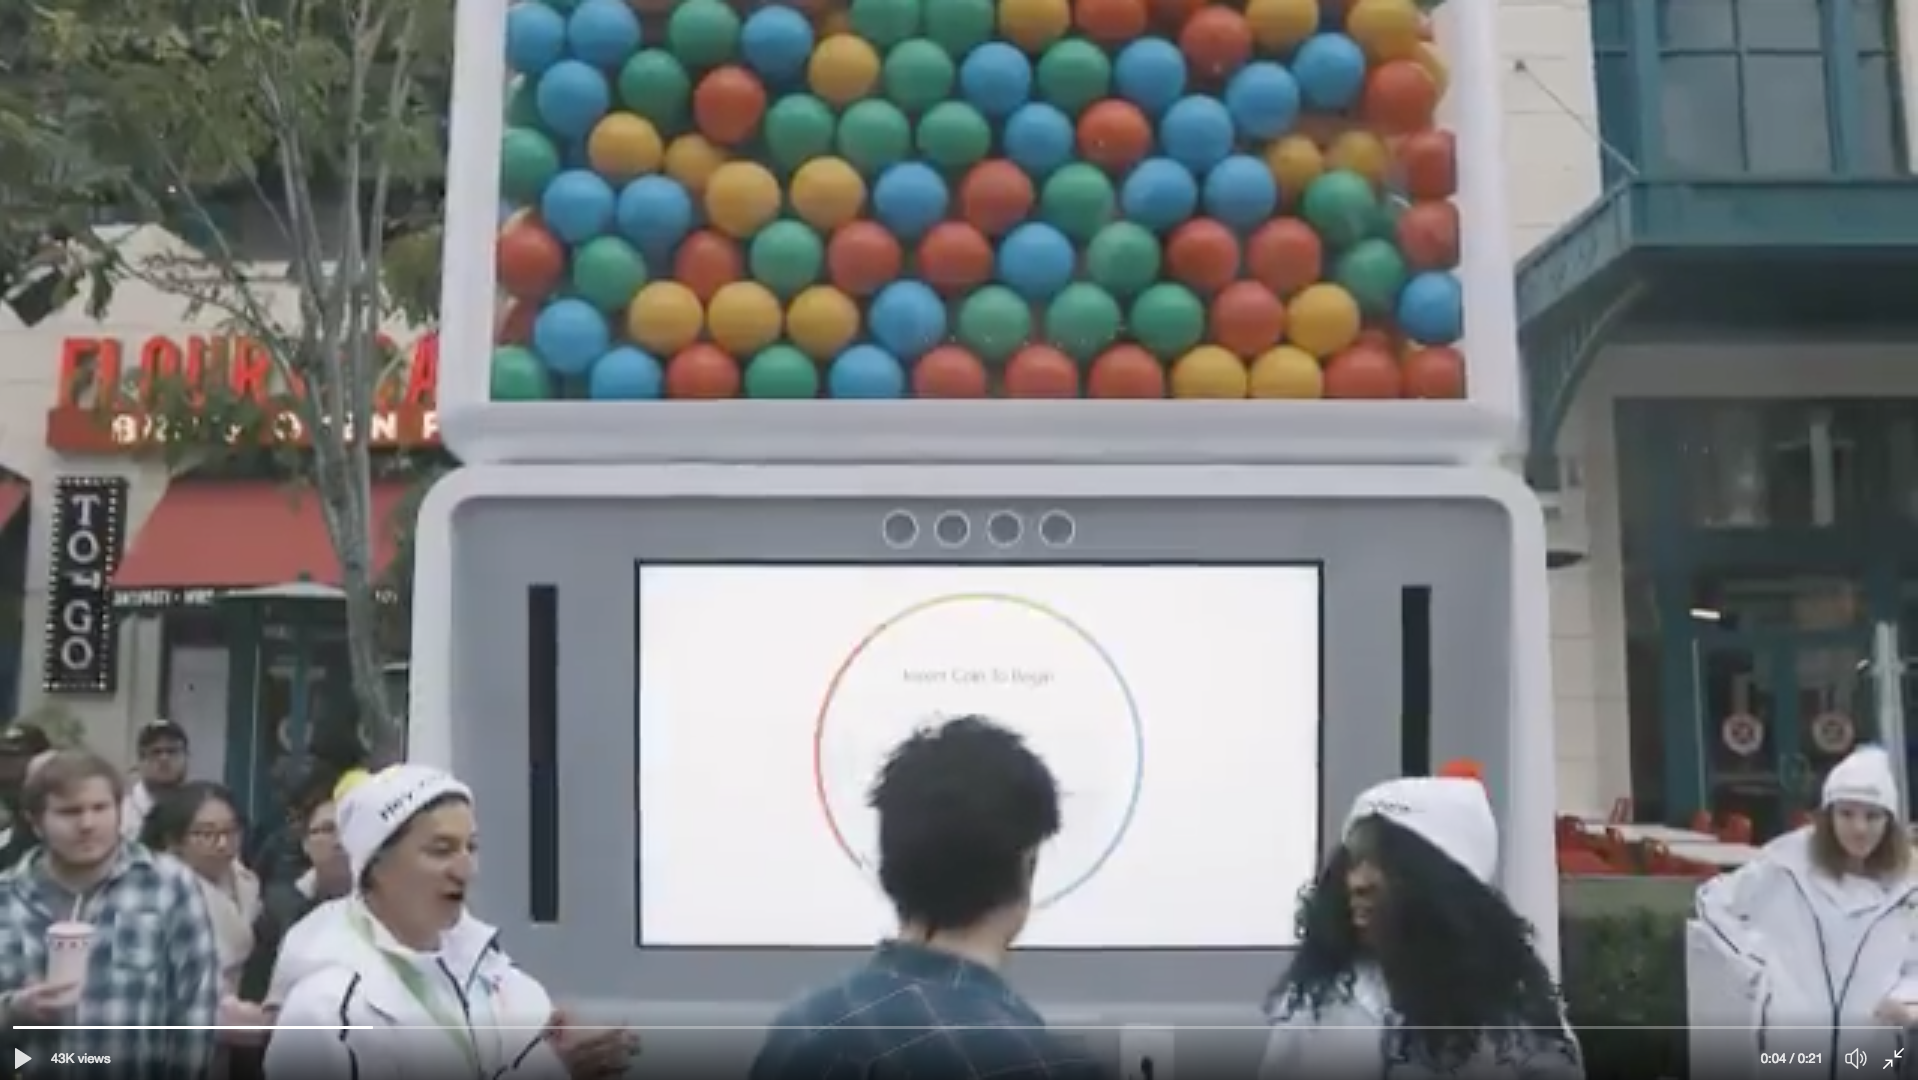 Google's AI Assistant powered gumball machine